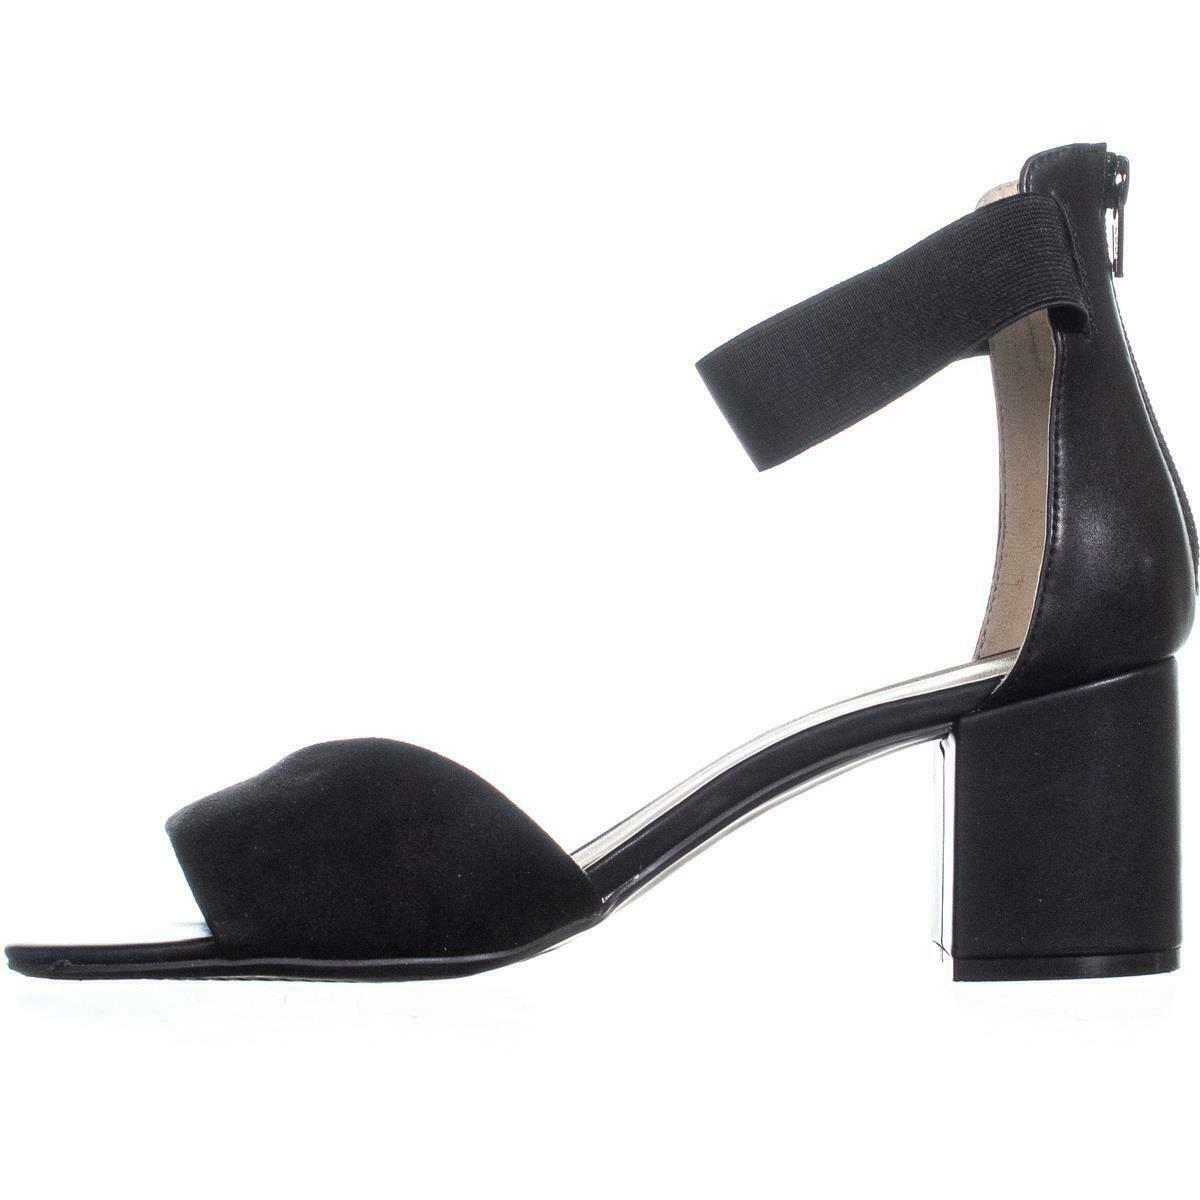 White Mountain Evie Criss Crossed Ankle Strap Sandals 736, Black, 10 US image 4